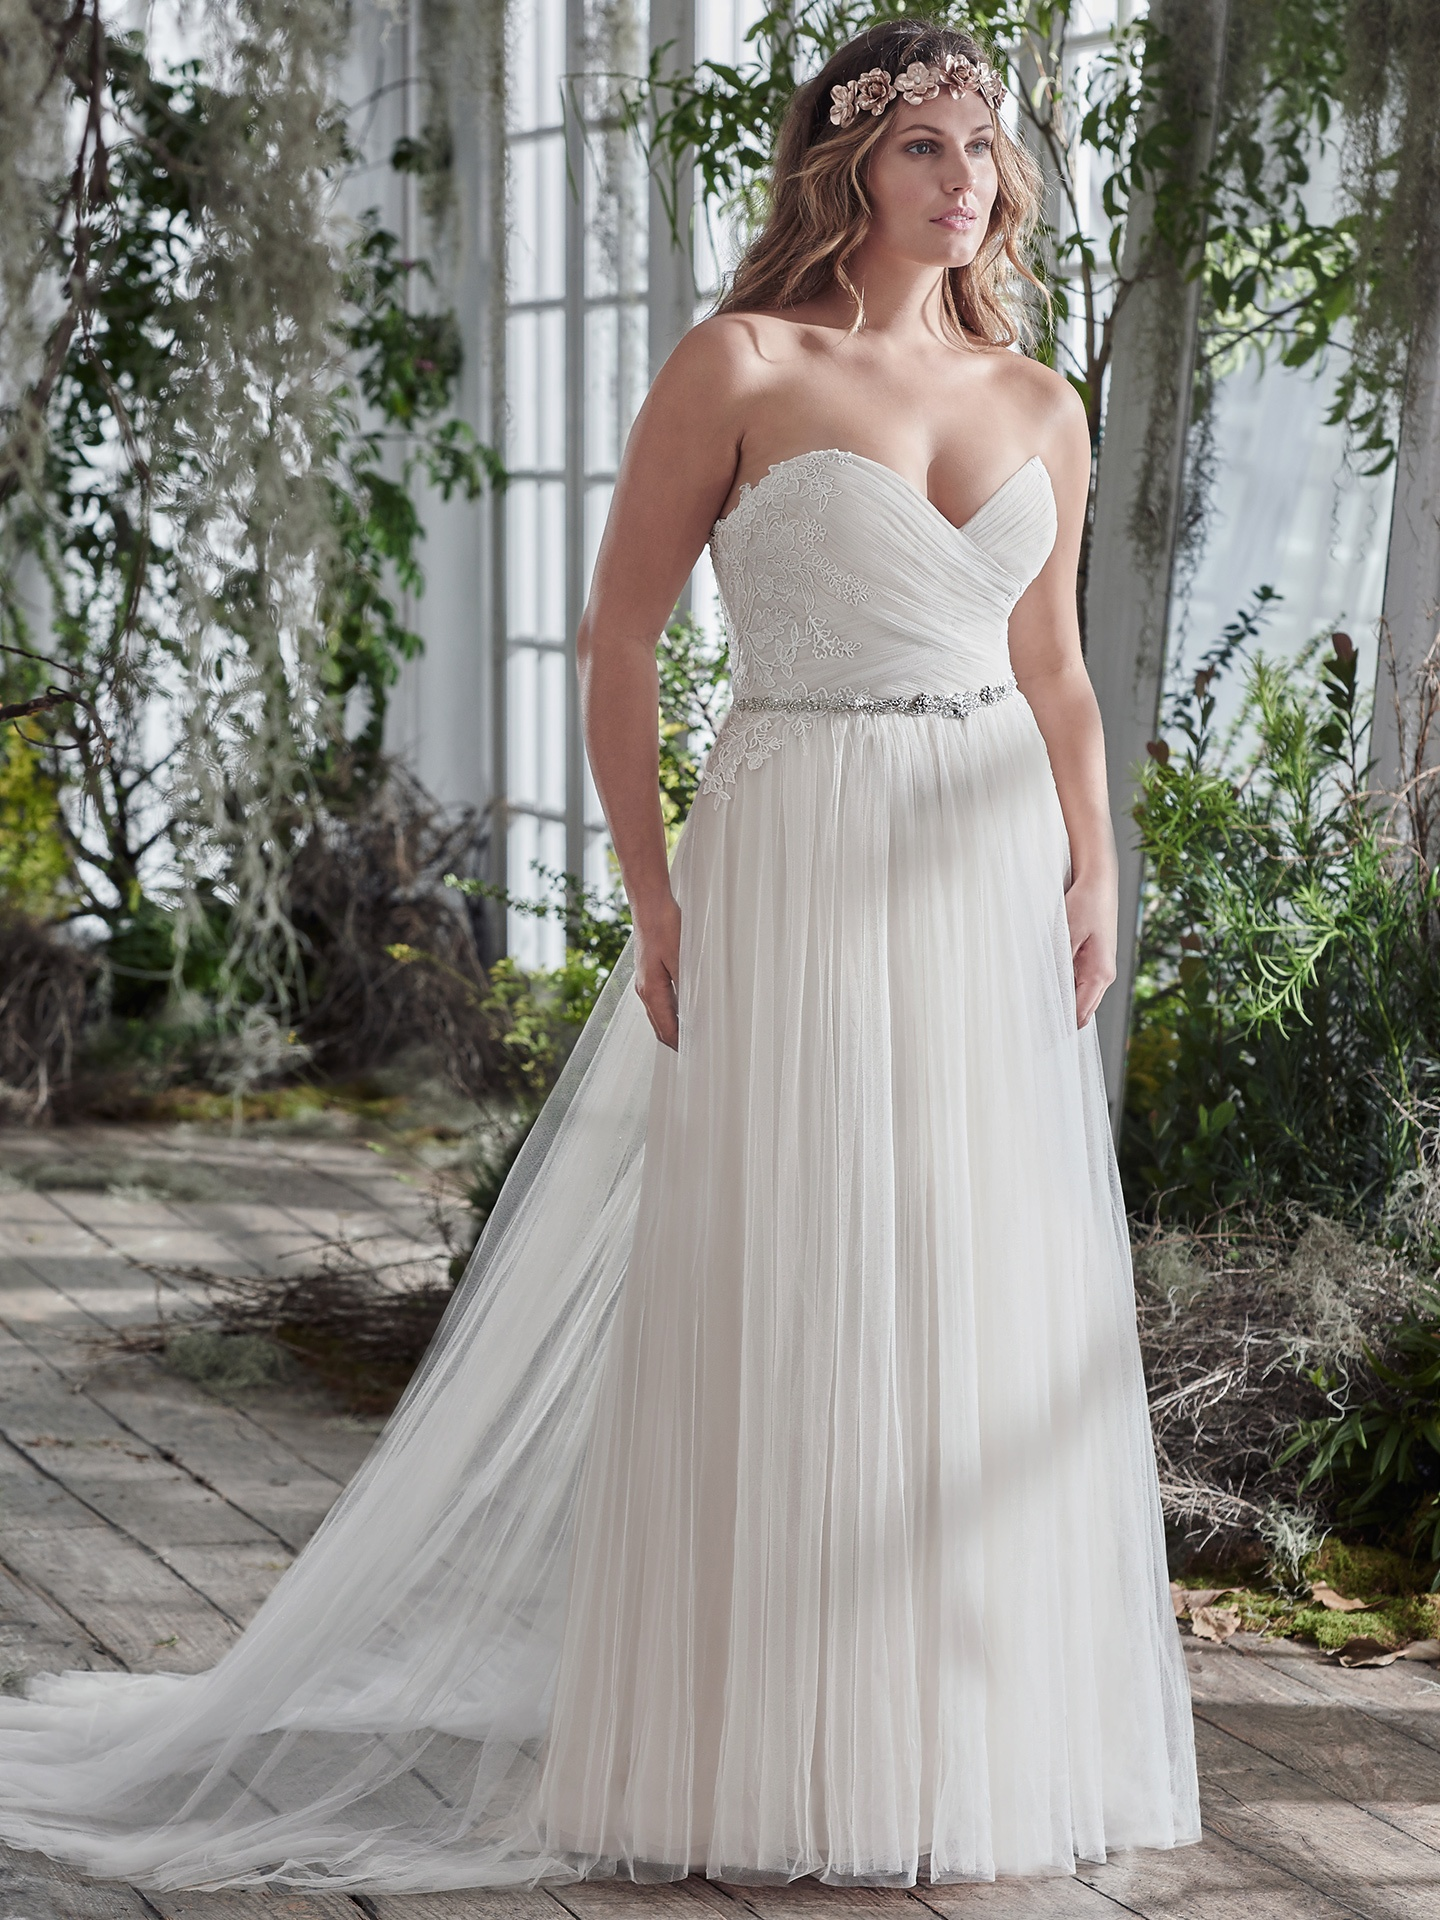 16 Best Wedding Gowns of 2016 - Patience by Maggie Sottero